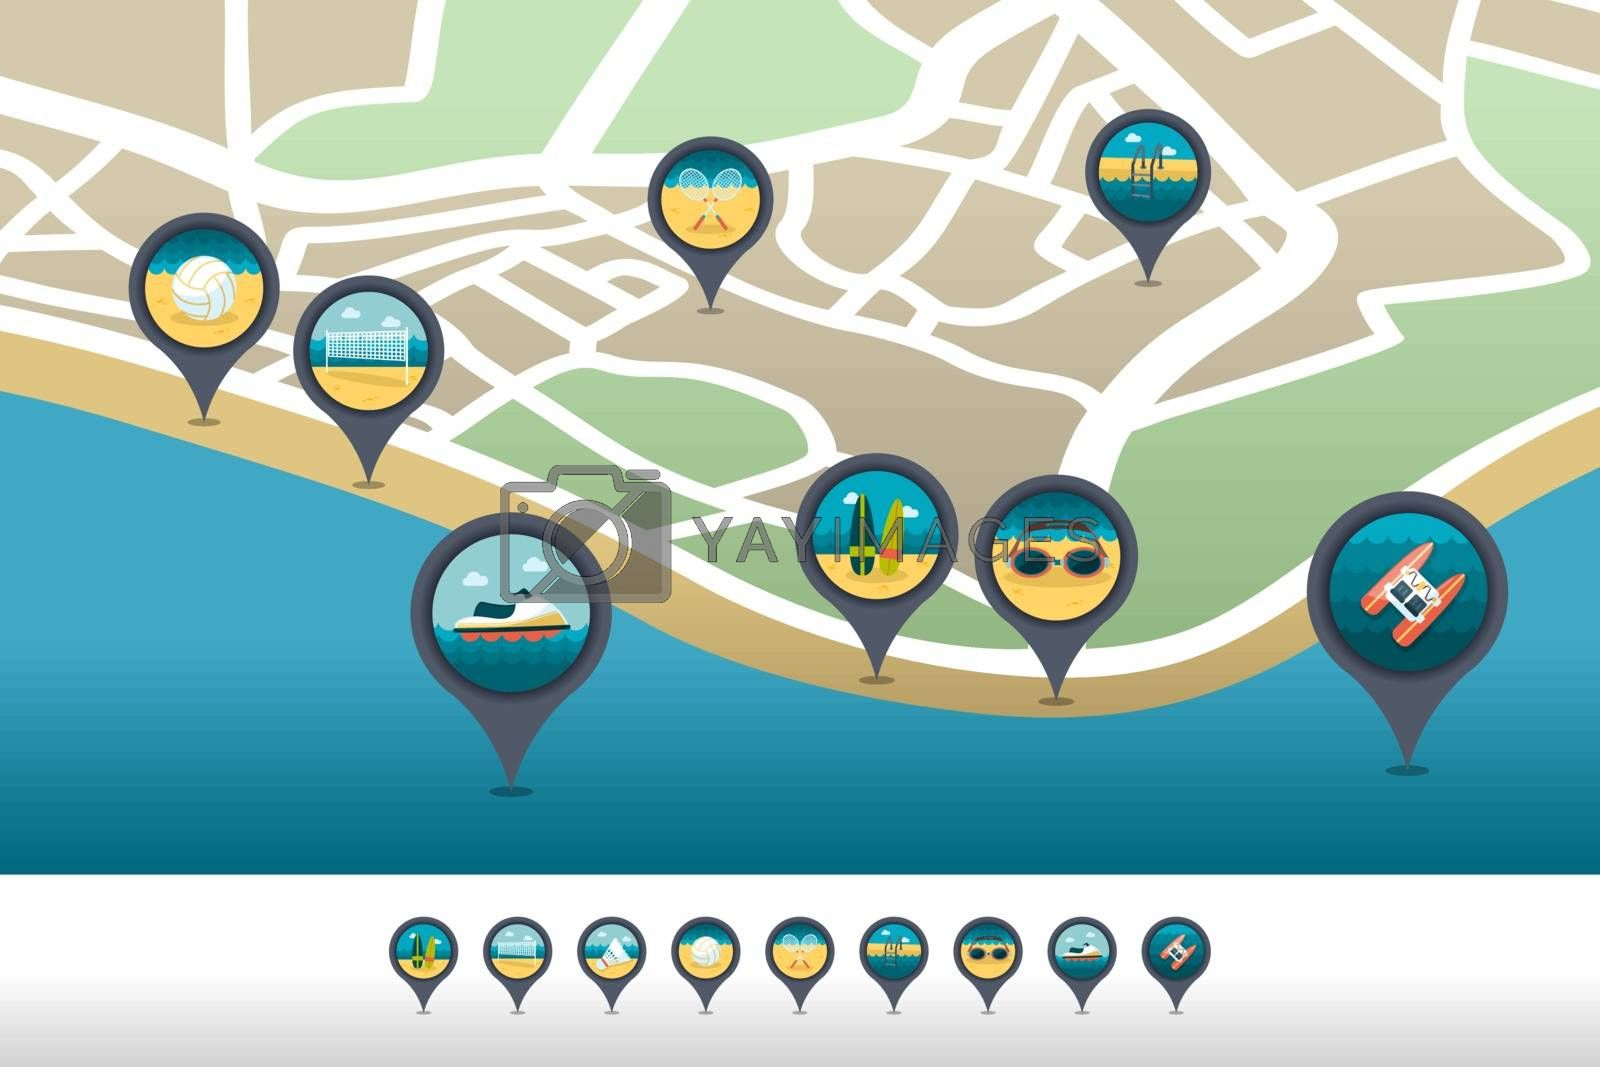 Beach activity pin map icon located on the map by nosik